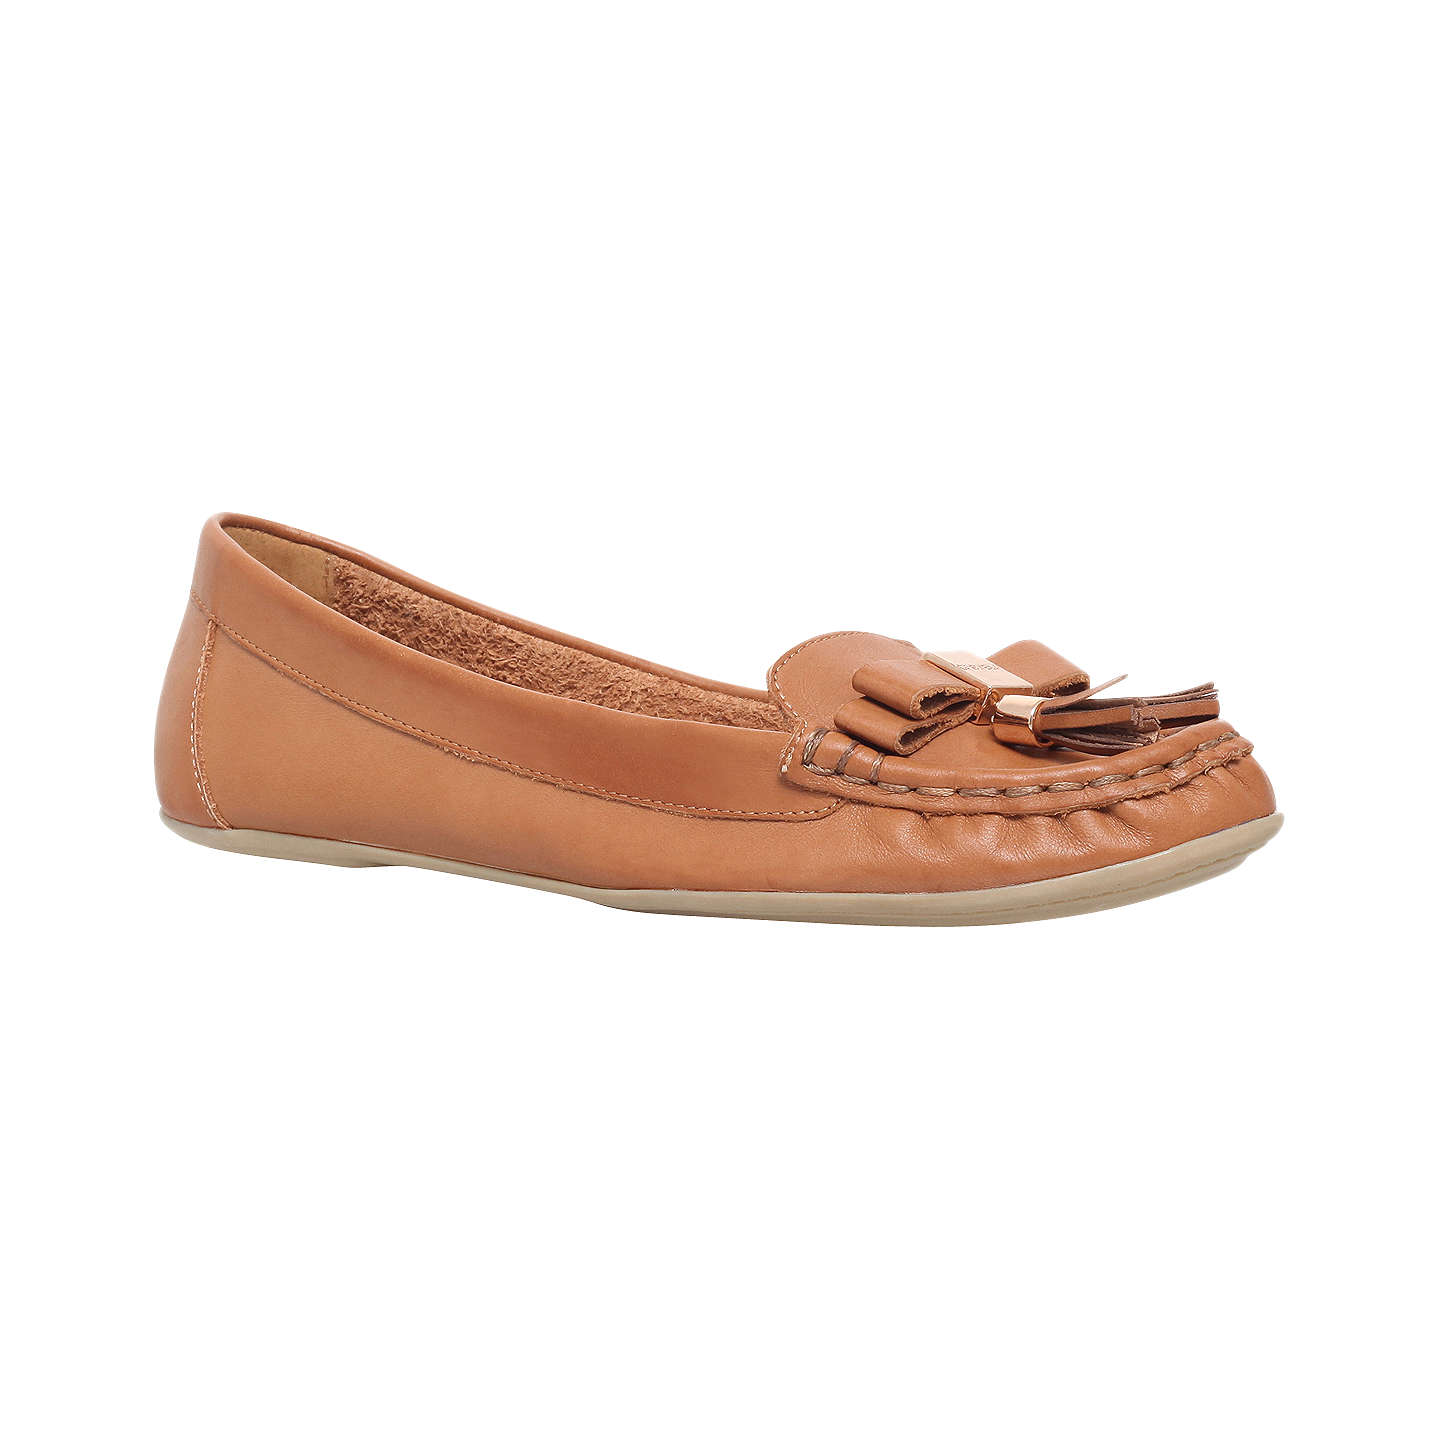 CARVELA Leaf tasselled leather loafers Tan - F3186